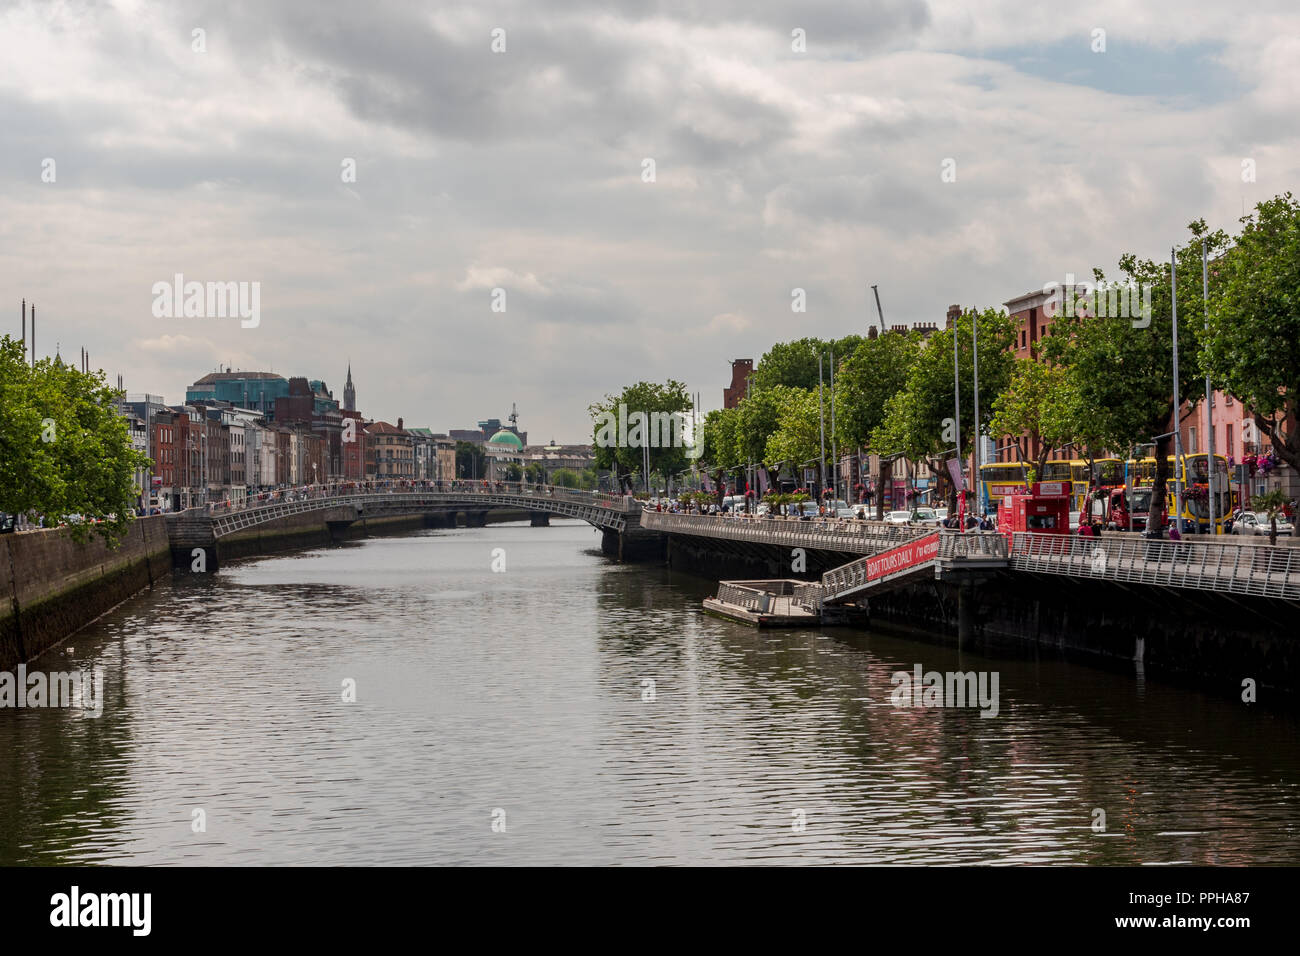 Dublin, Ireland -- July 9, 2018.  The sidewalks and streets of the River Liffey in Dublin Ireland are crowded with travelers and tourists. - Stock Image